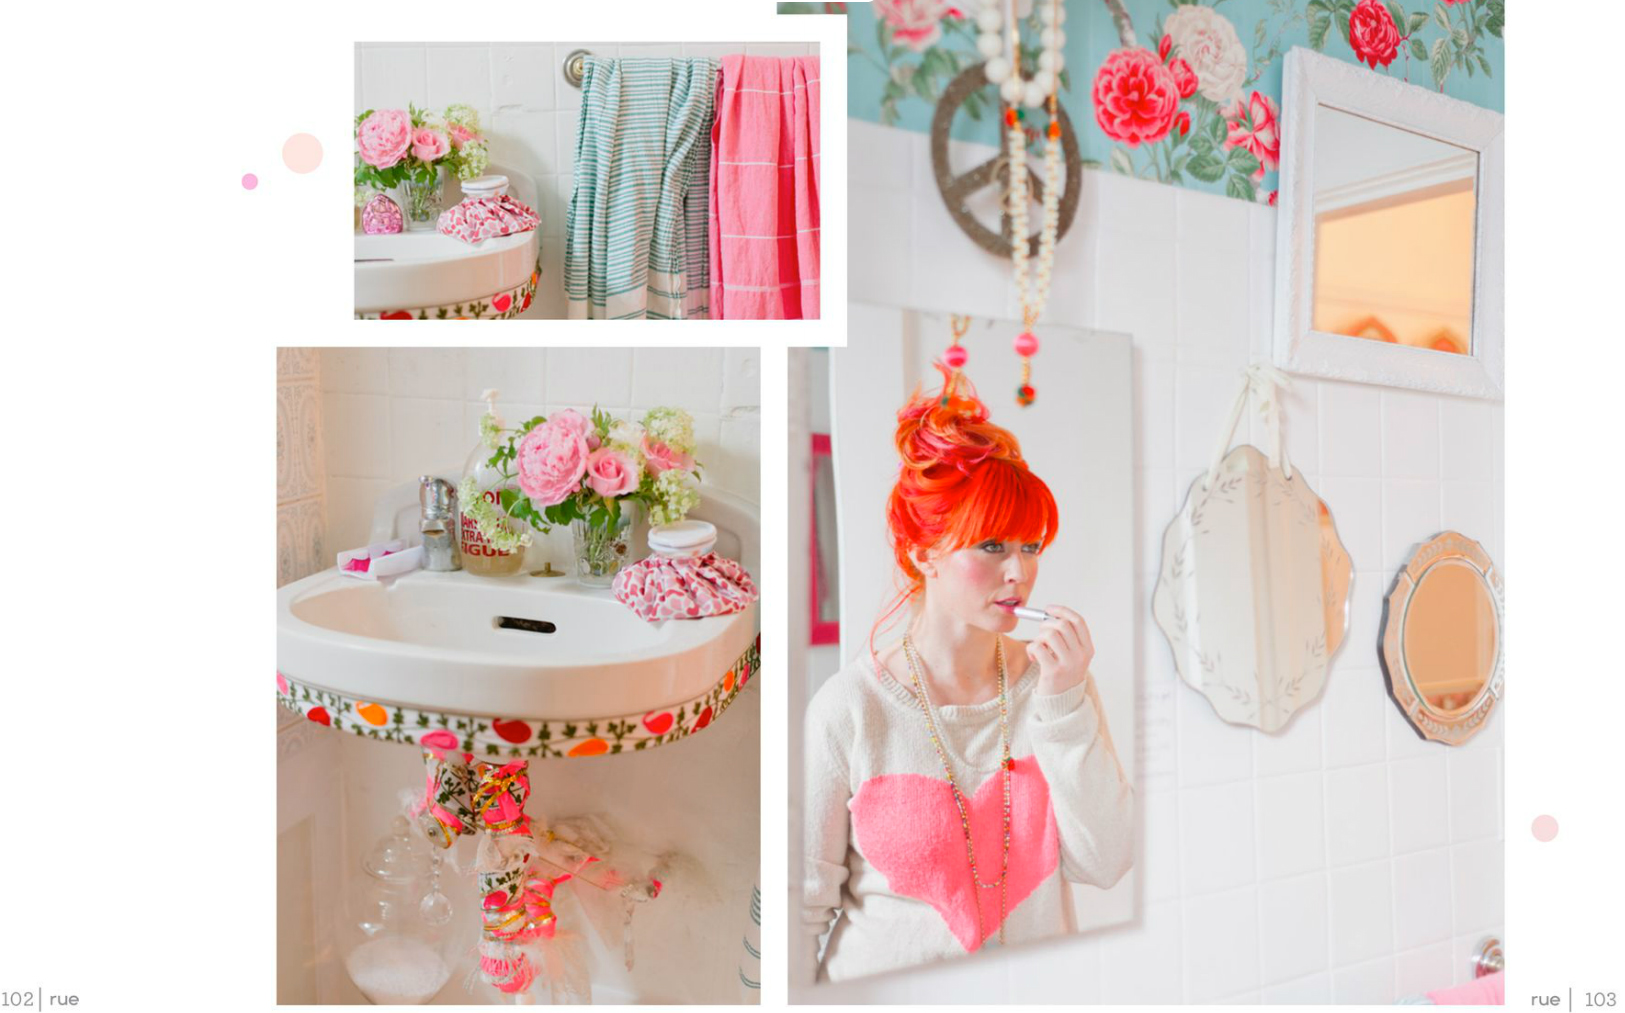 tara mcmullen photography tiffany pratt's home in rue magazine rue magazine color issue tiffany pink hair glitter suite-6